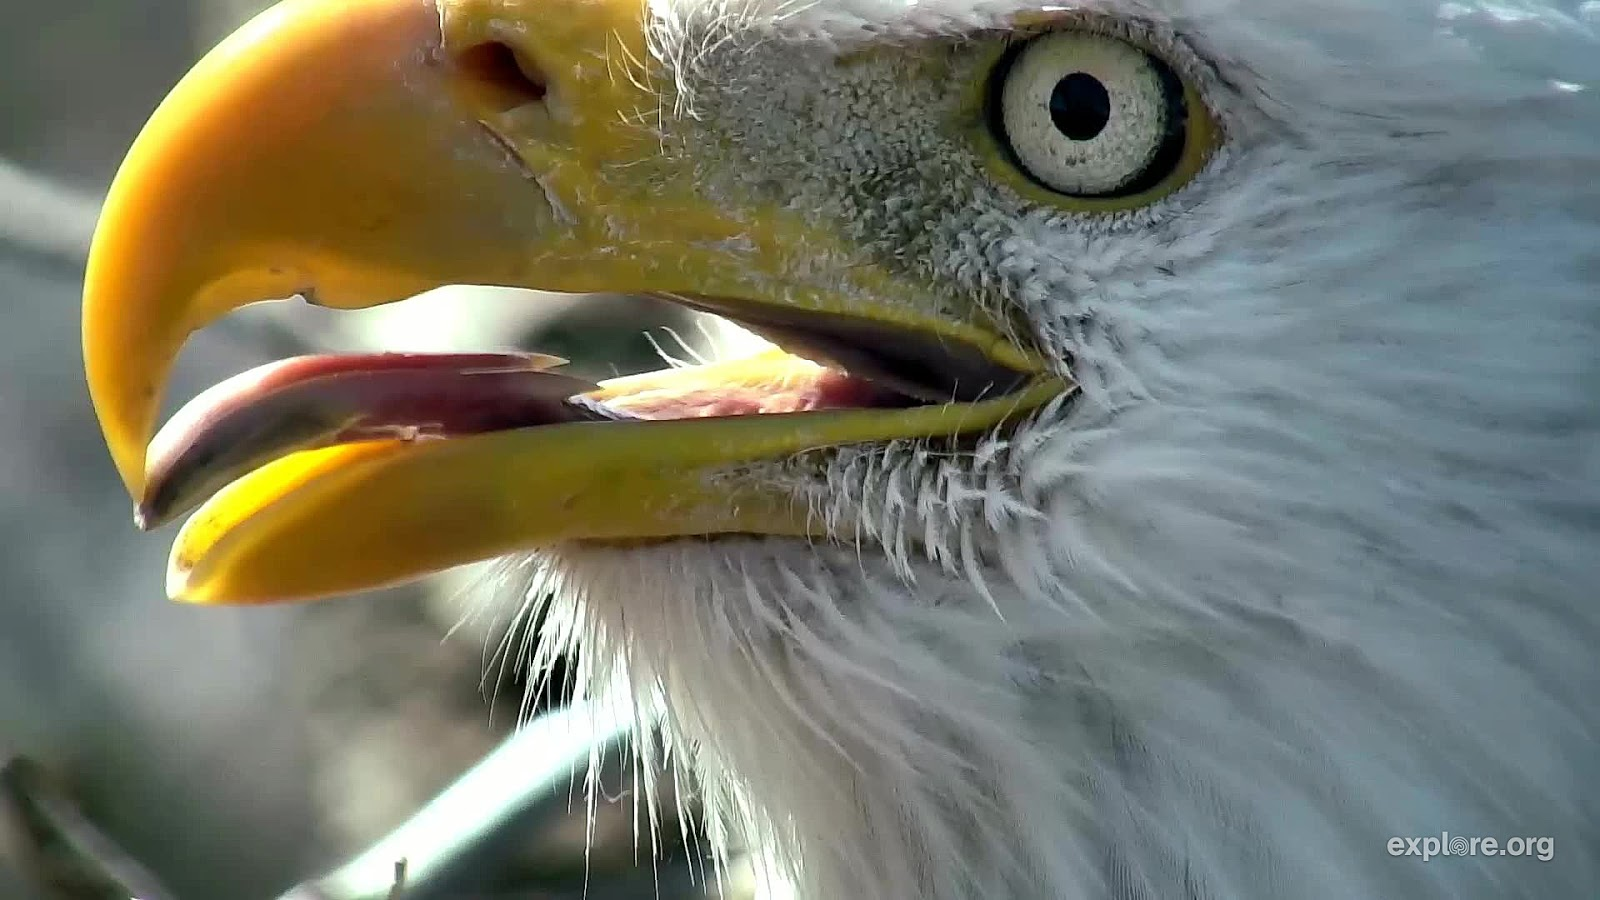 Raptor Resource Project Blog: Bald eagle tongues and beaks!